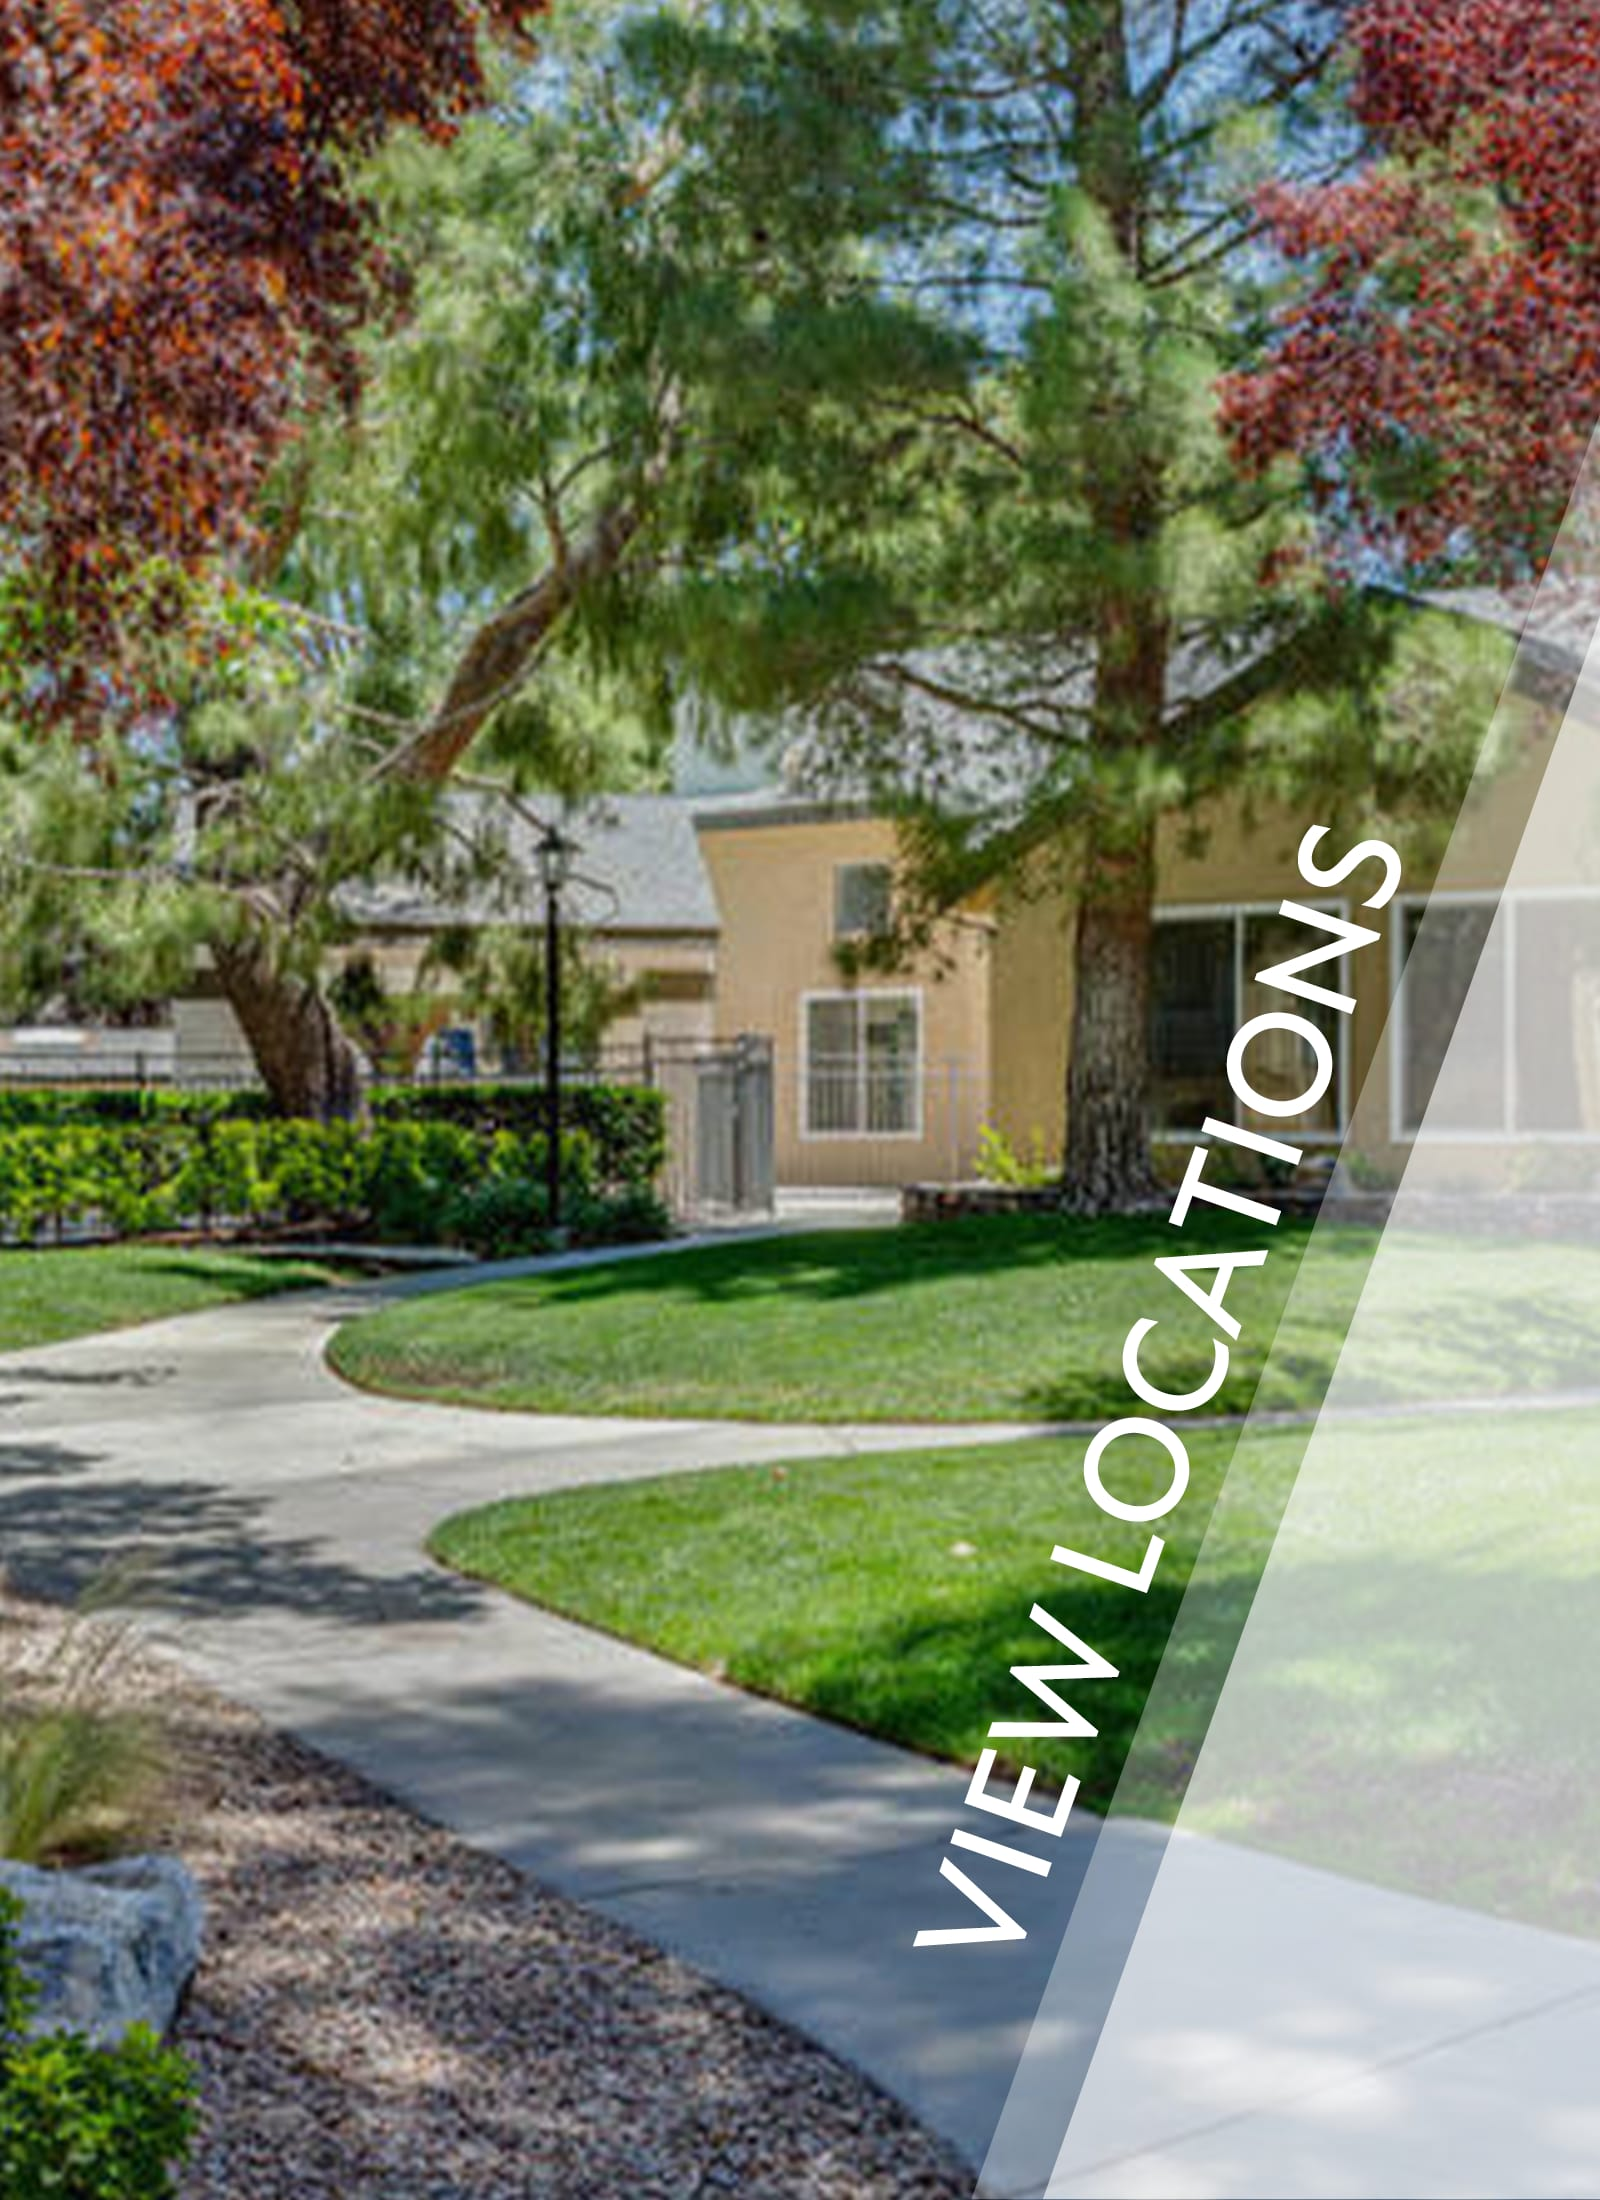 Link to luxury apartment communities in San Bernardino by E&S Ring Management Corporation in Los Angeles, California